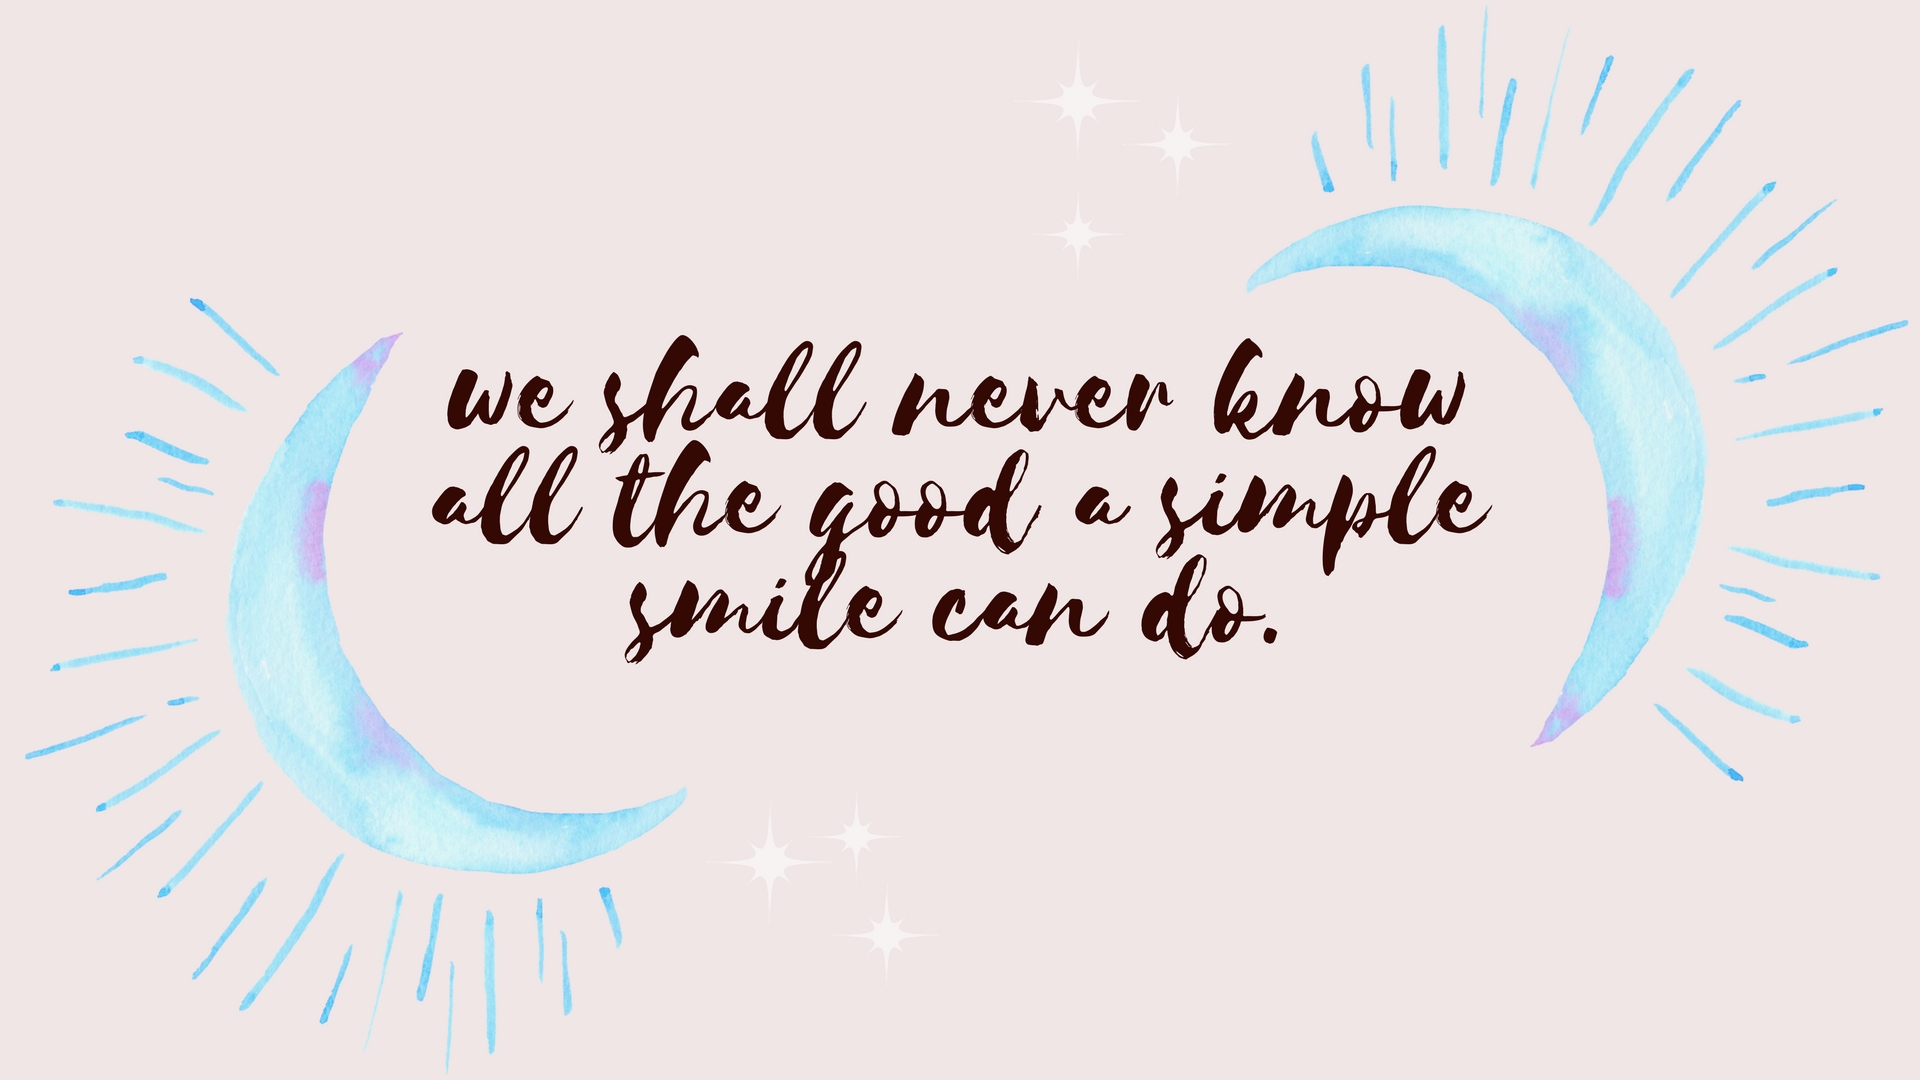 all the good a smile can do desktop wallpaper